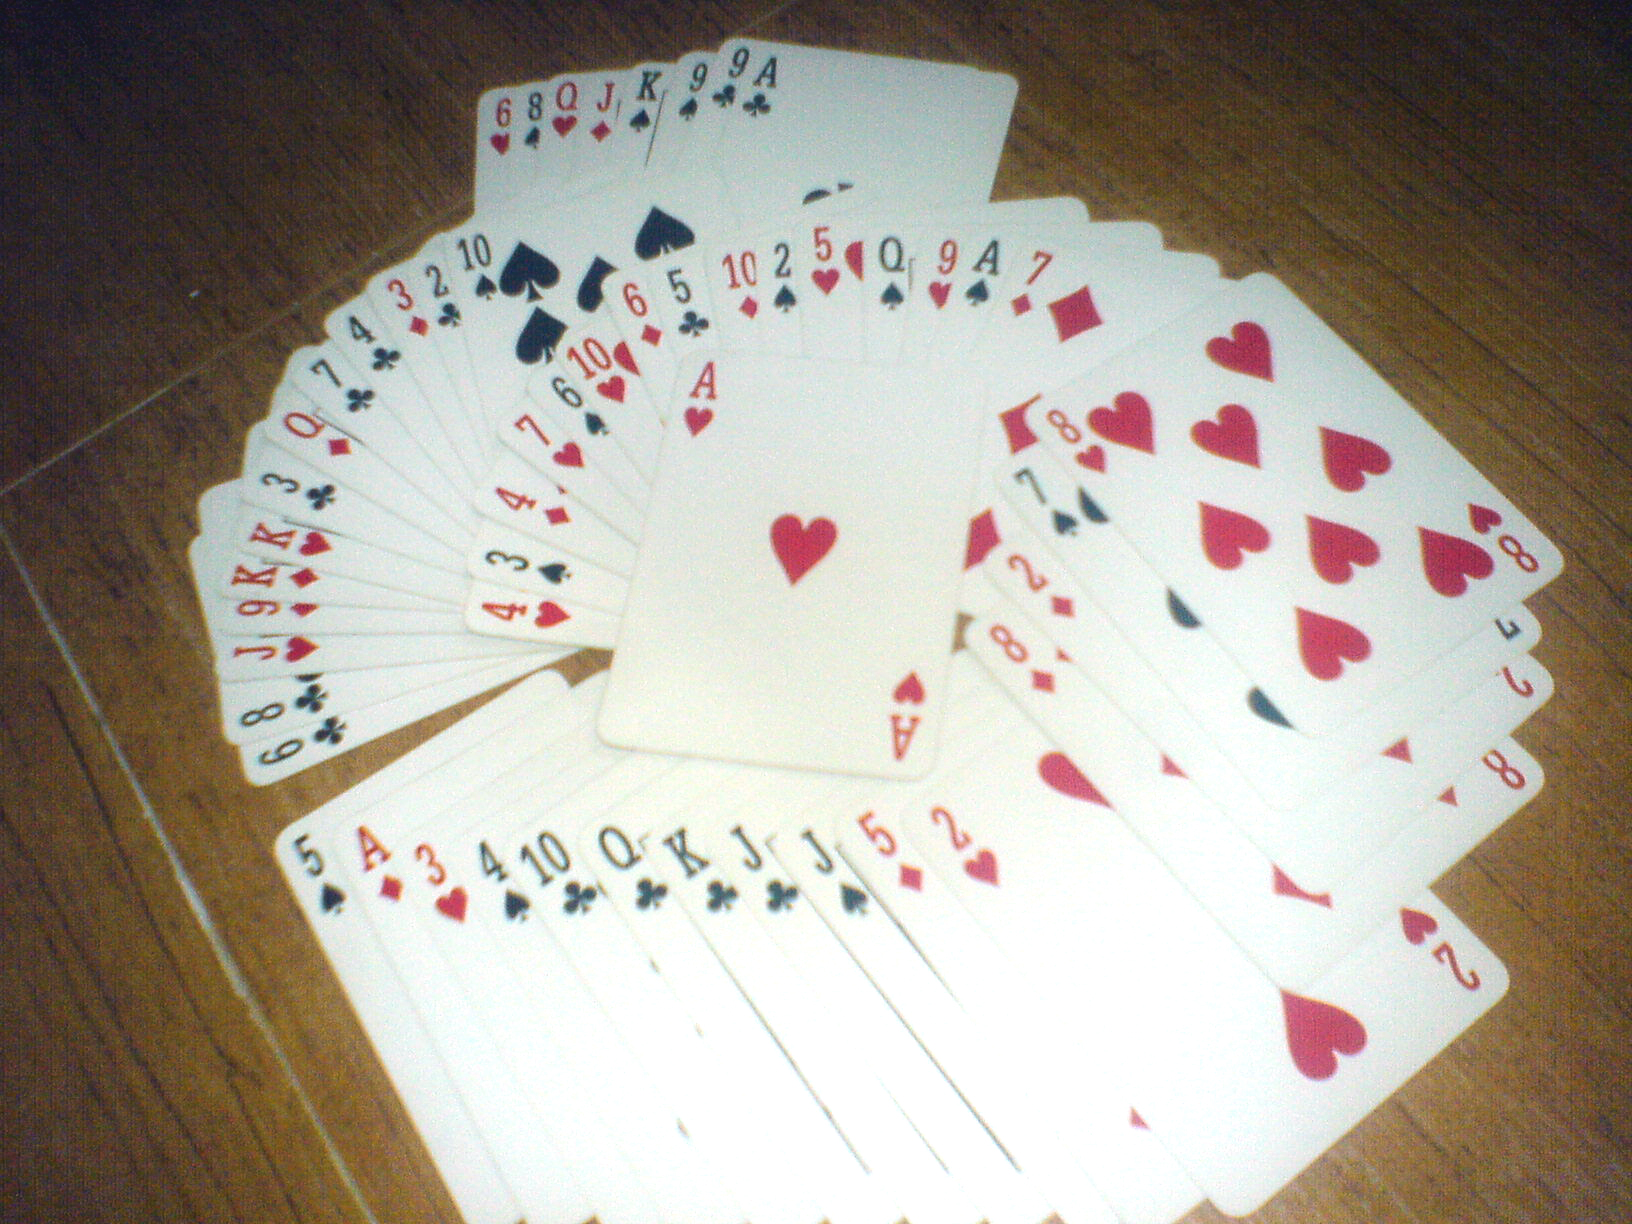 Description playing cards jpg